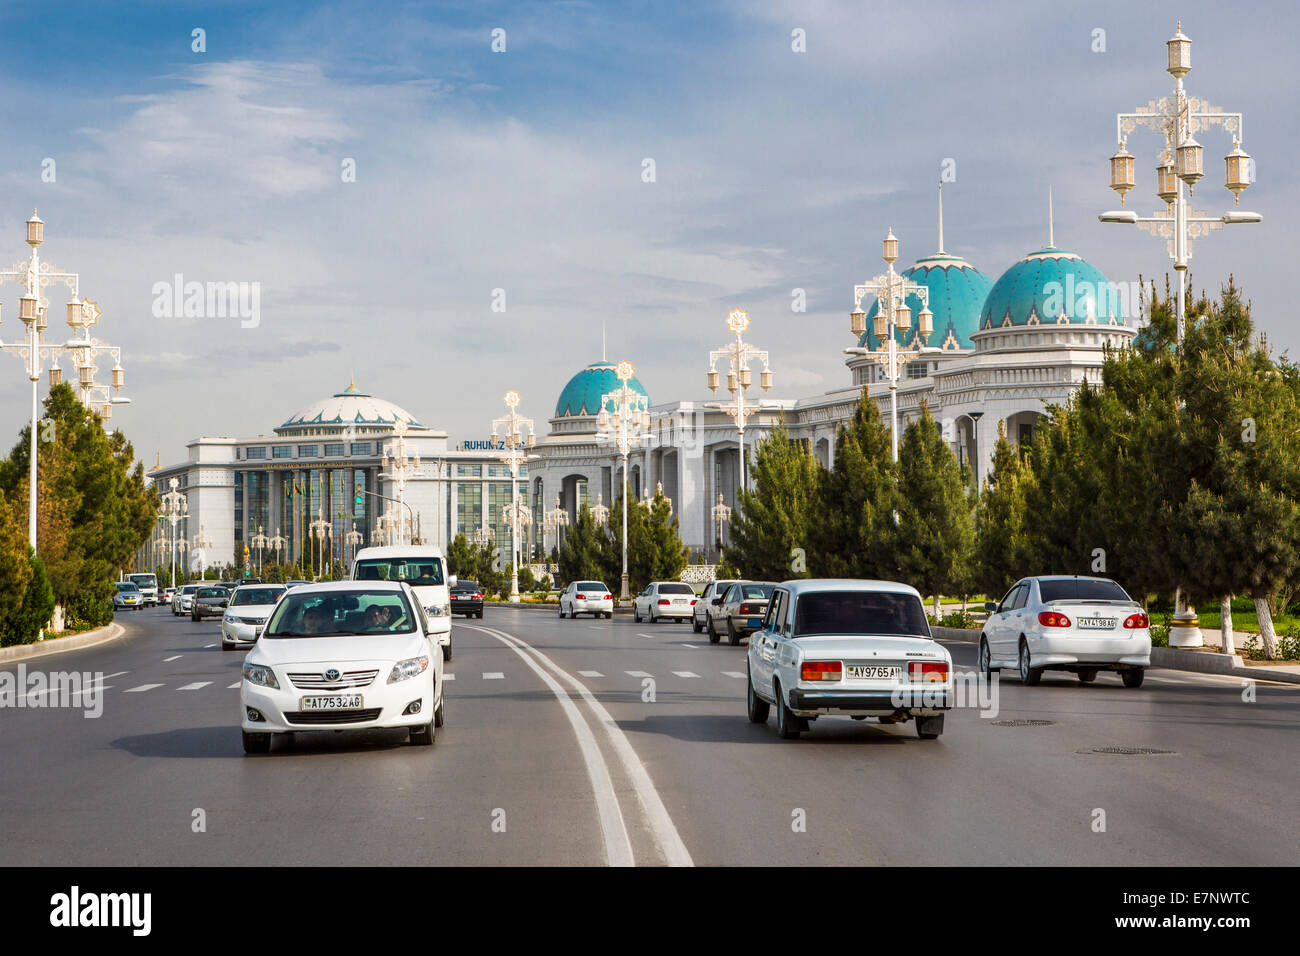 Ashgabat, City, Ruhyet, Turkmenistan, Central Asia, Asia, avenue, blue, domes, downtown, palace, road, traffic - Stock Image